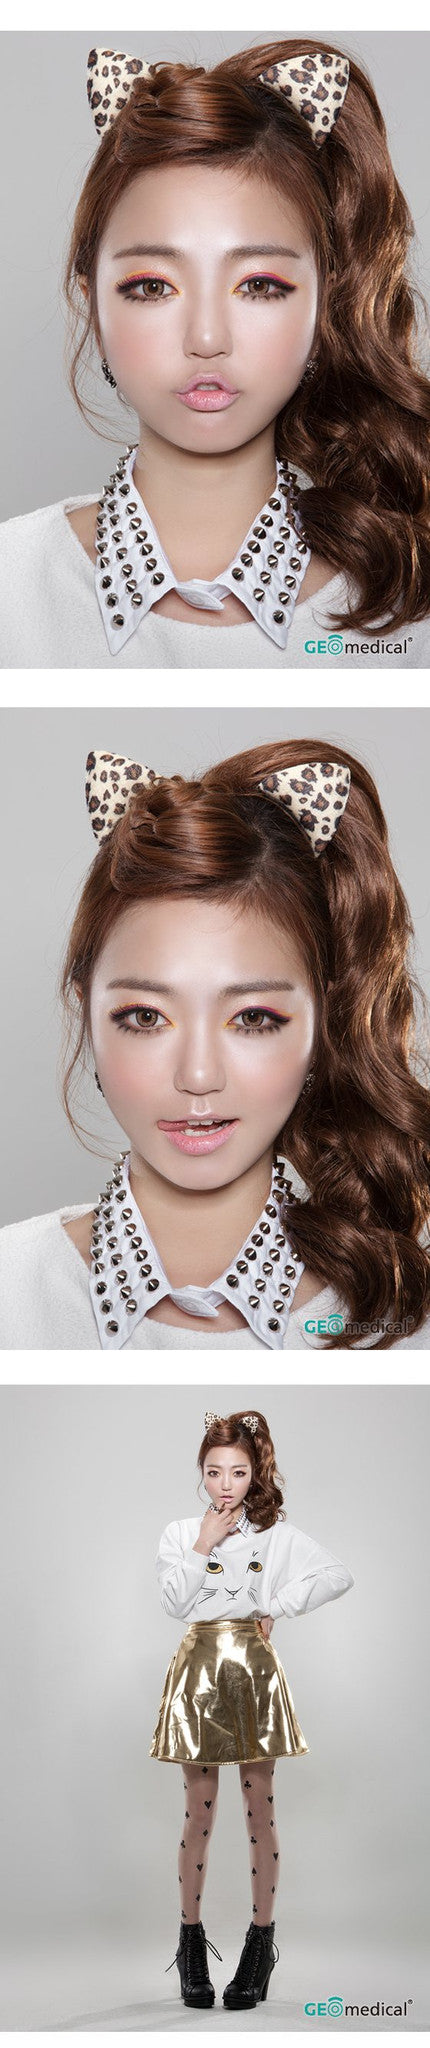 GEOLICA® HoliCat™ Barbie Cat Hazel Coloured Contact Lenses | Singapore Authorised Dealer | FREE Worldwide Shipping | Price Match Guarantee